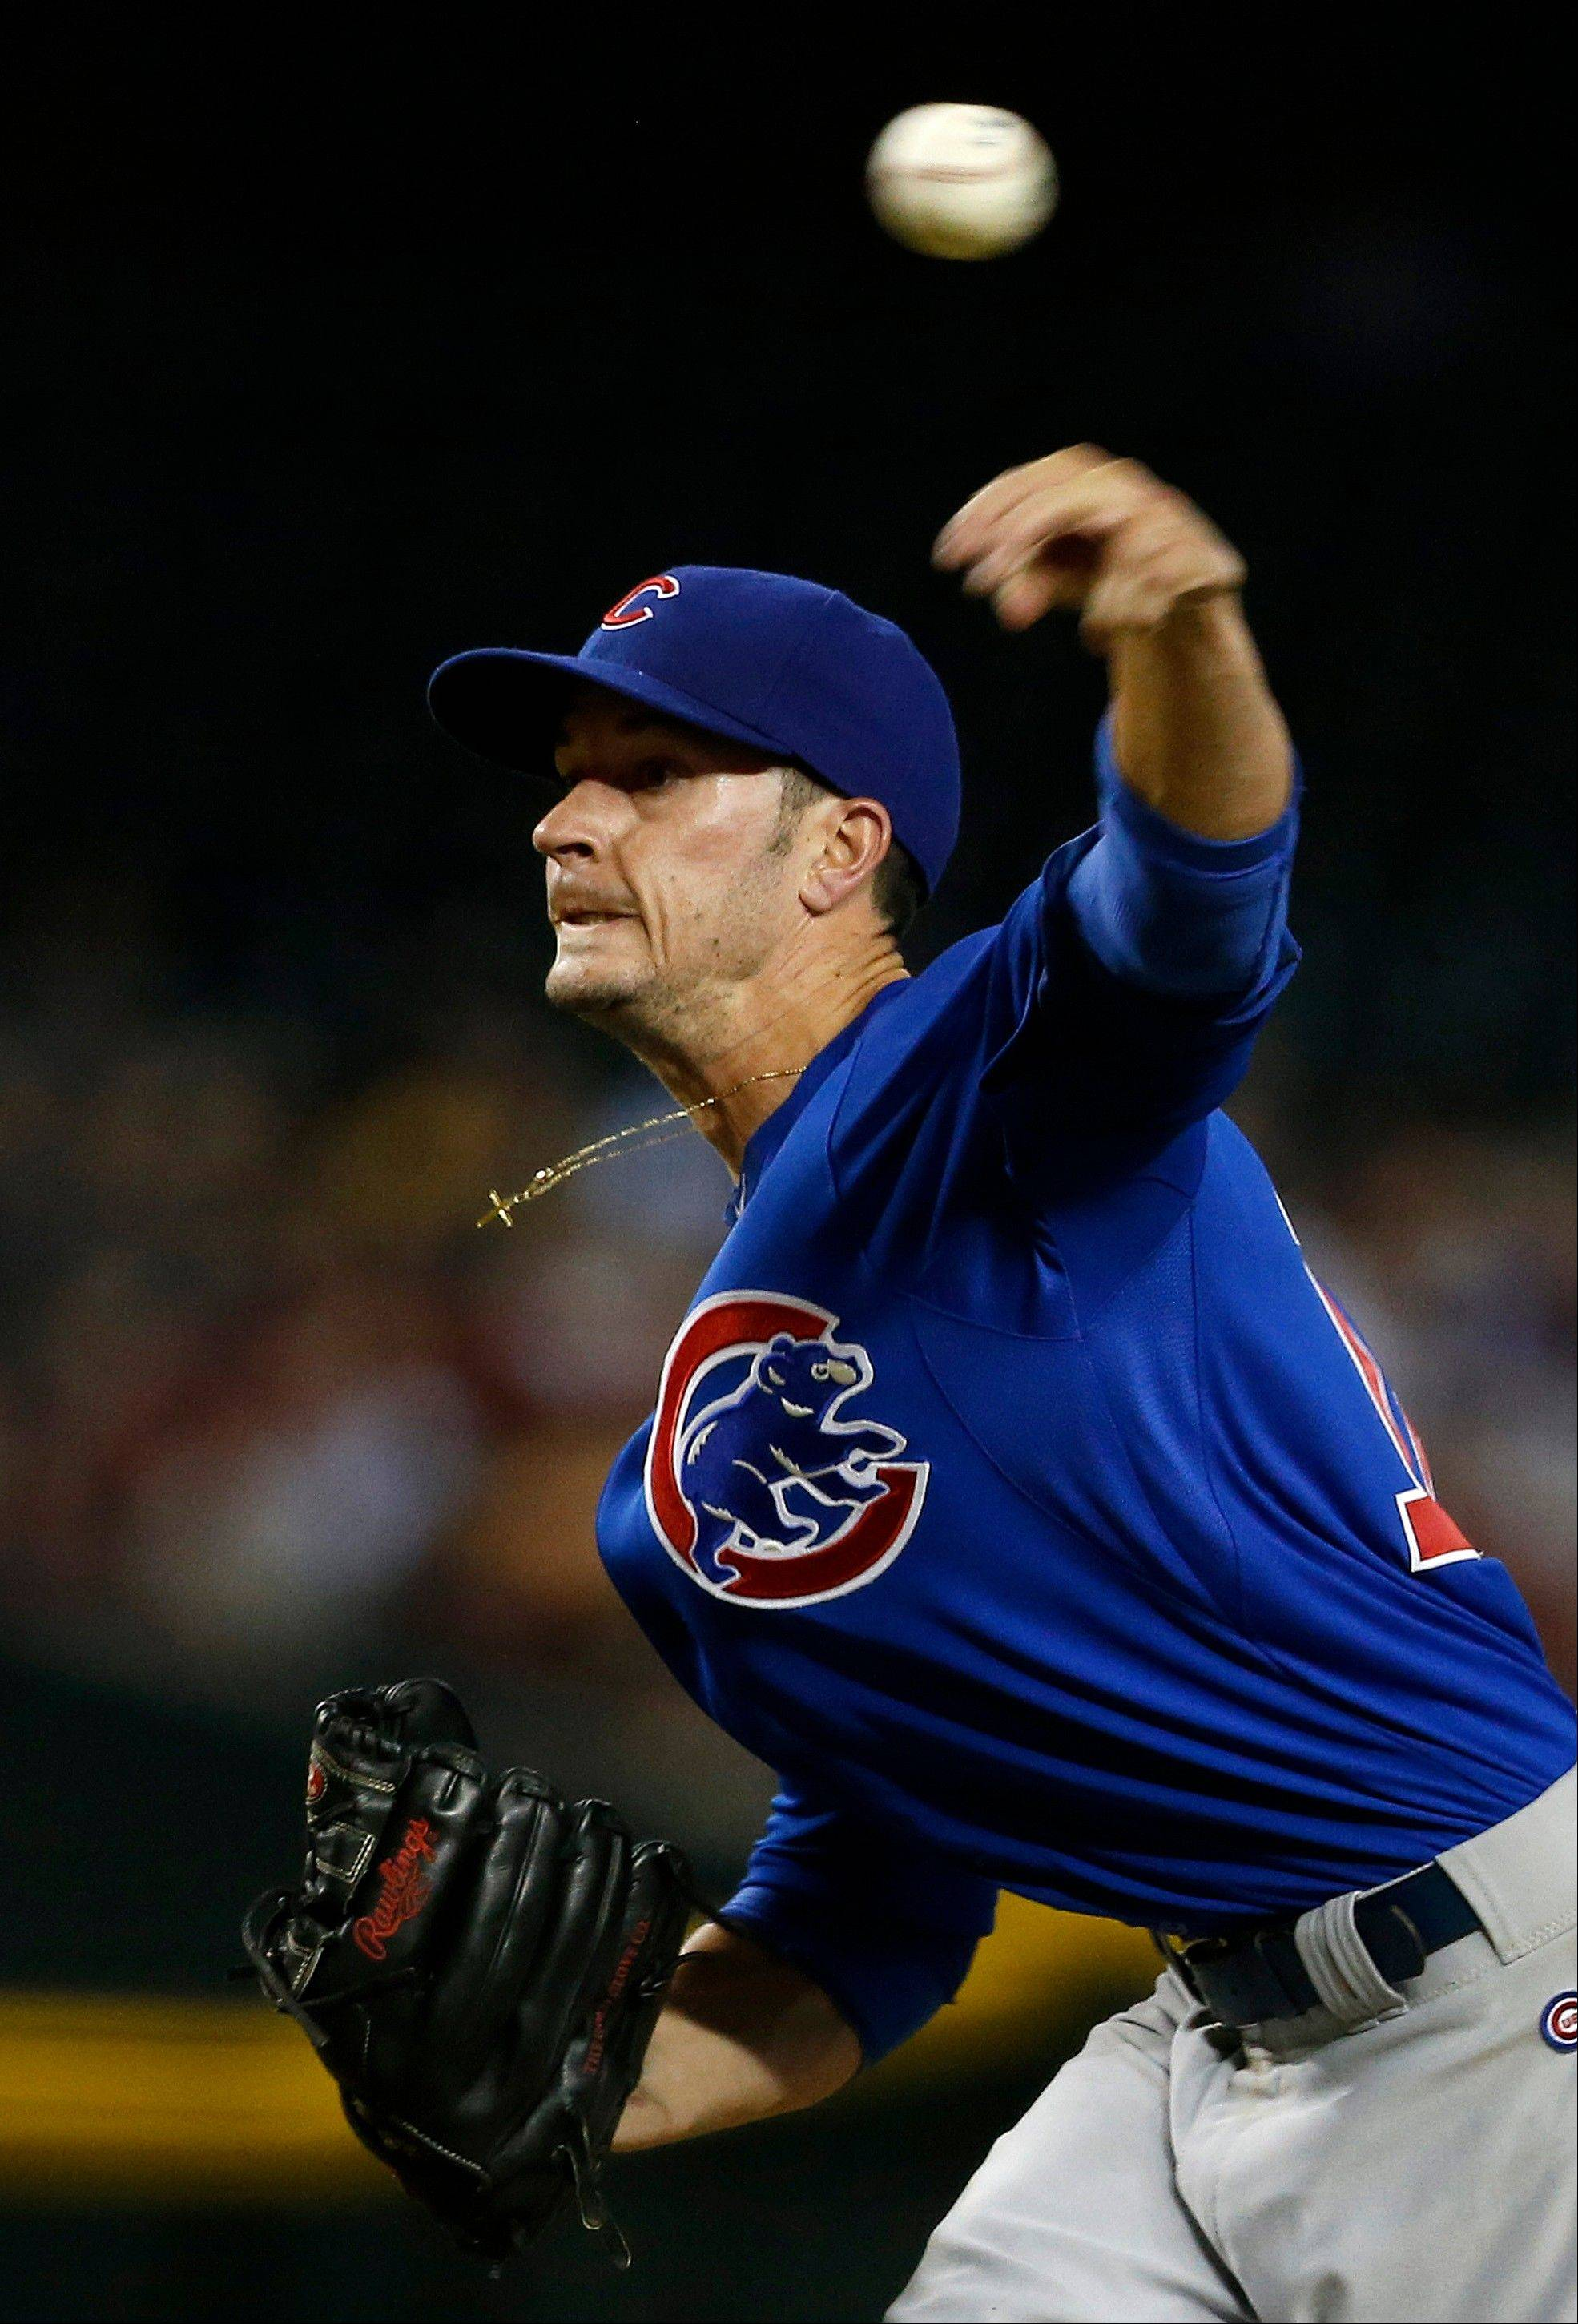 The Cubs' Chris Rusin retired the first seven Diamondbacks he faced Monday in Phoenix.